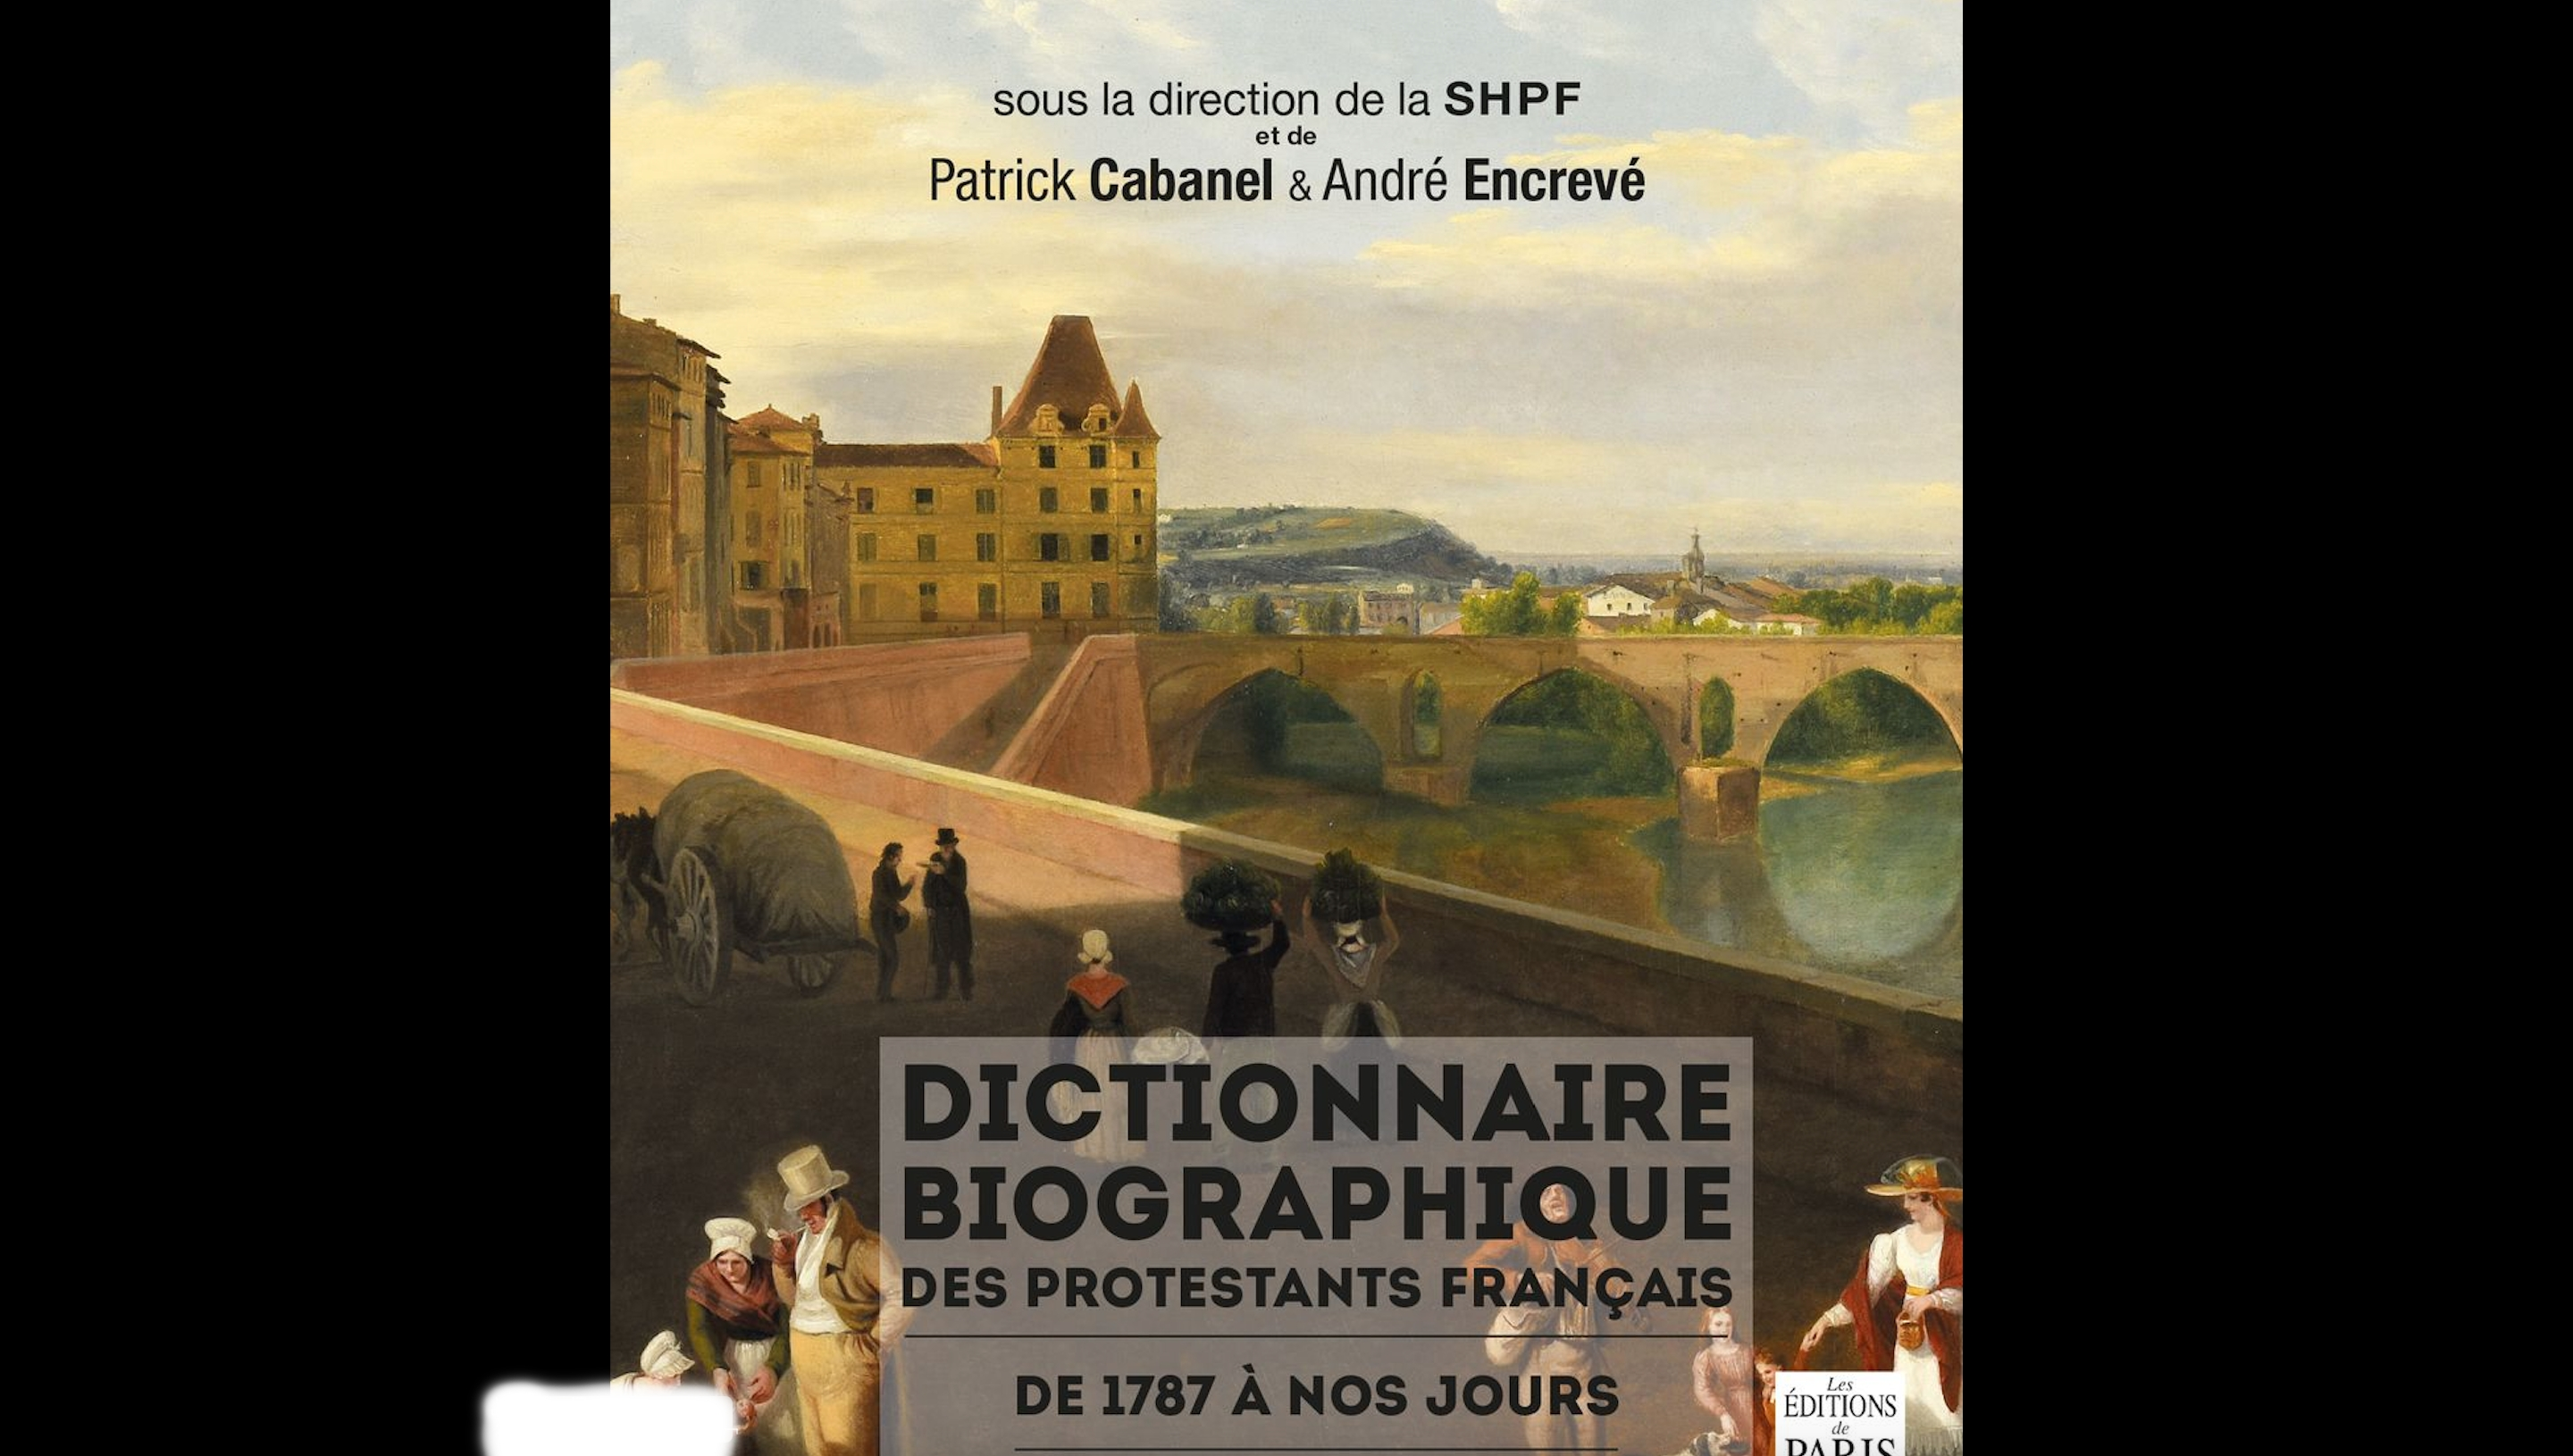 Dictionnaire Cabanel grand 2020-11-19 à 23.03.56